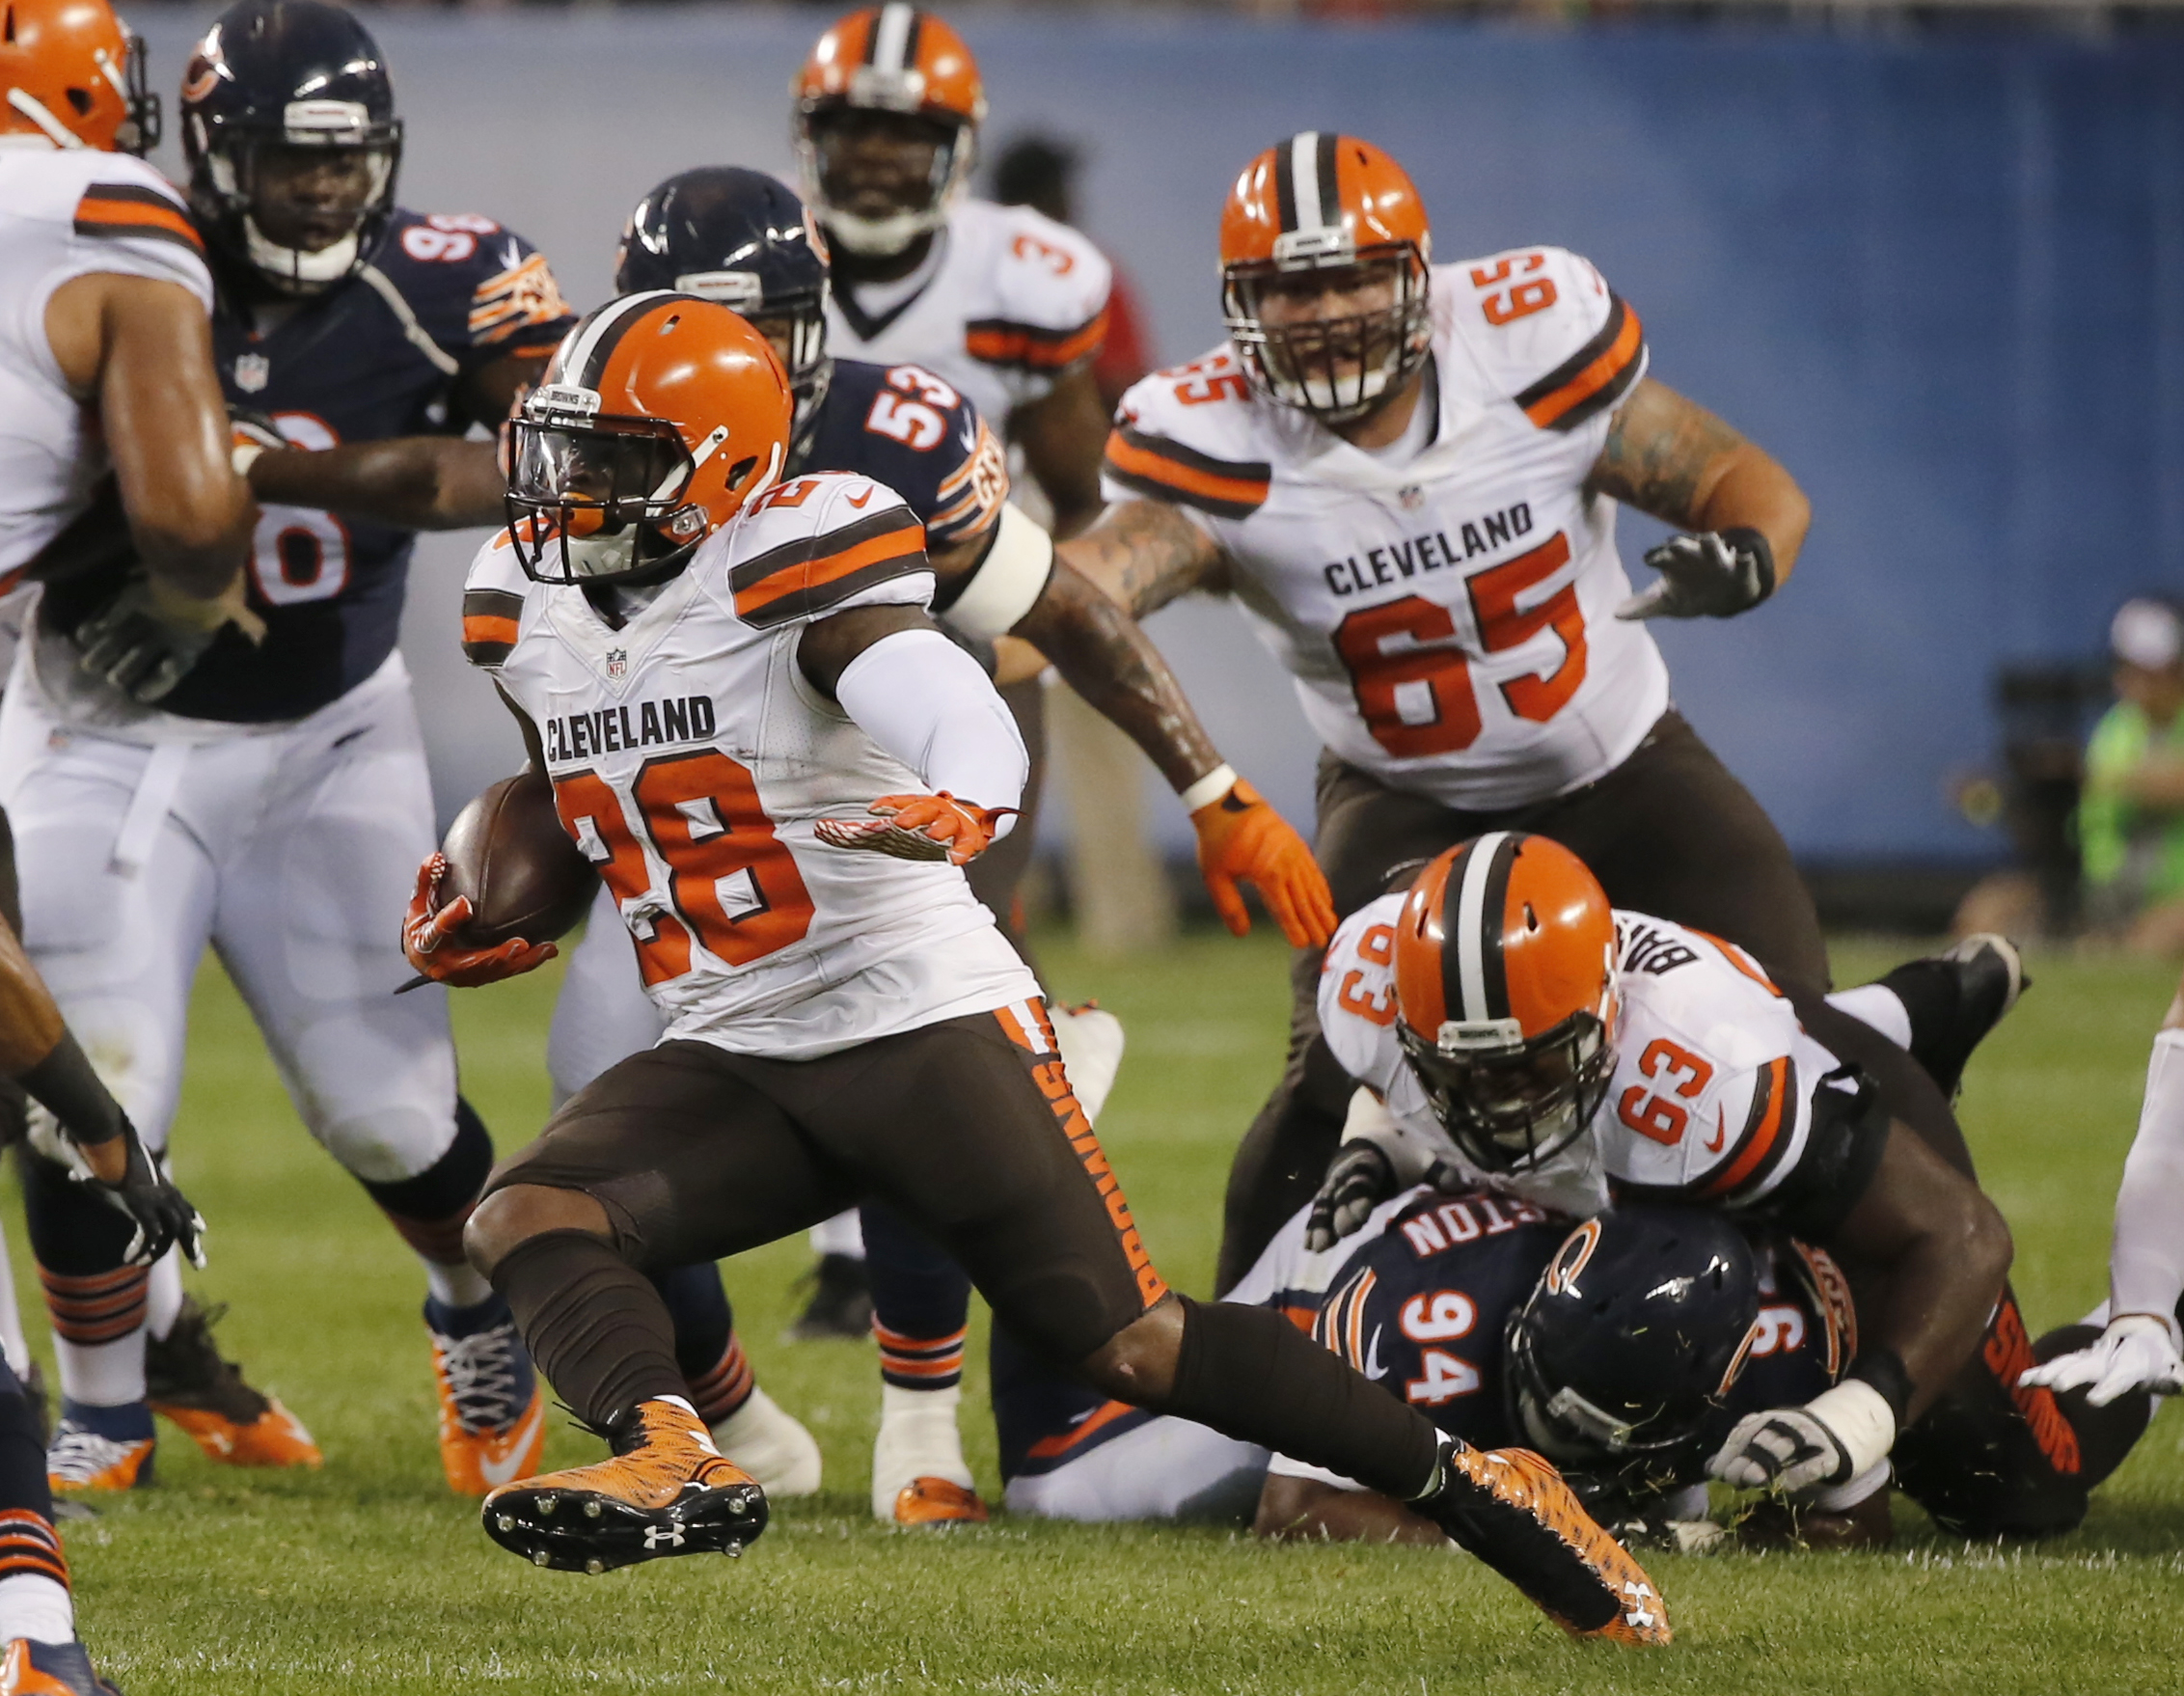 Cleveland Browns running back Terrance West (28) runs against Chicago Bears defense during the first half of an NFL preseason football game, Thursday, Sept. 3, 2015, in Chicago. (AP Photo/Charles Rex Arbogast)